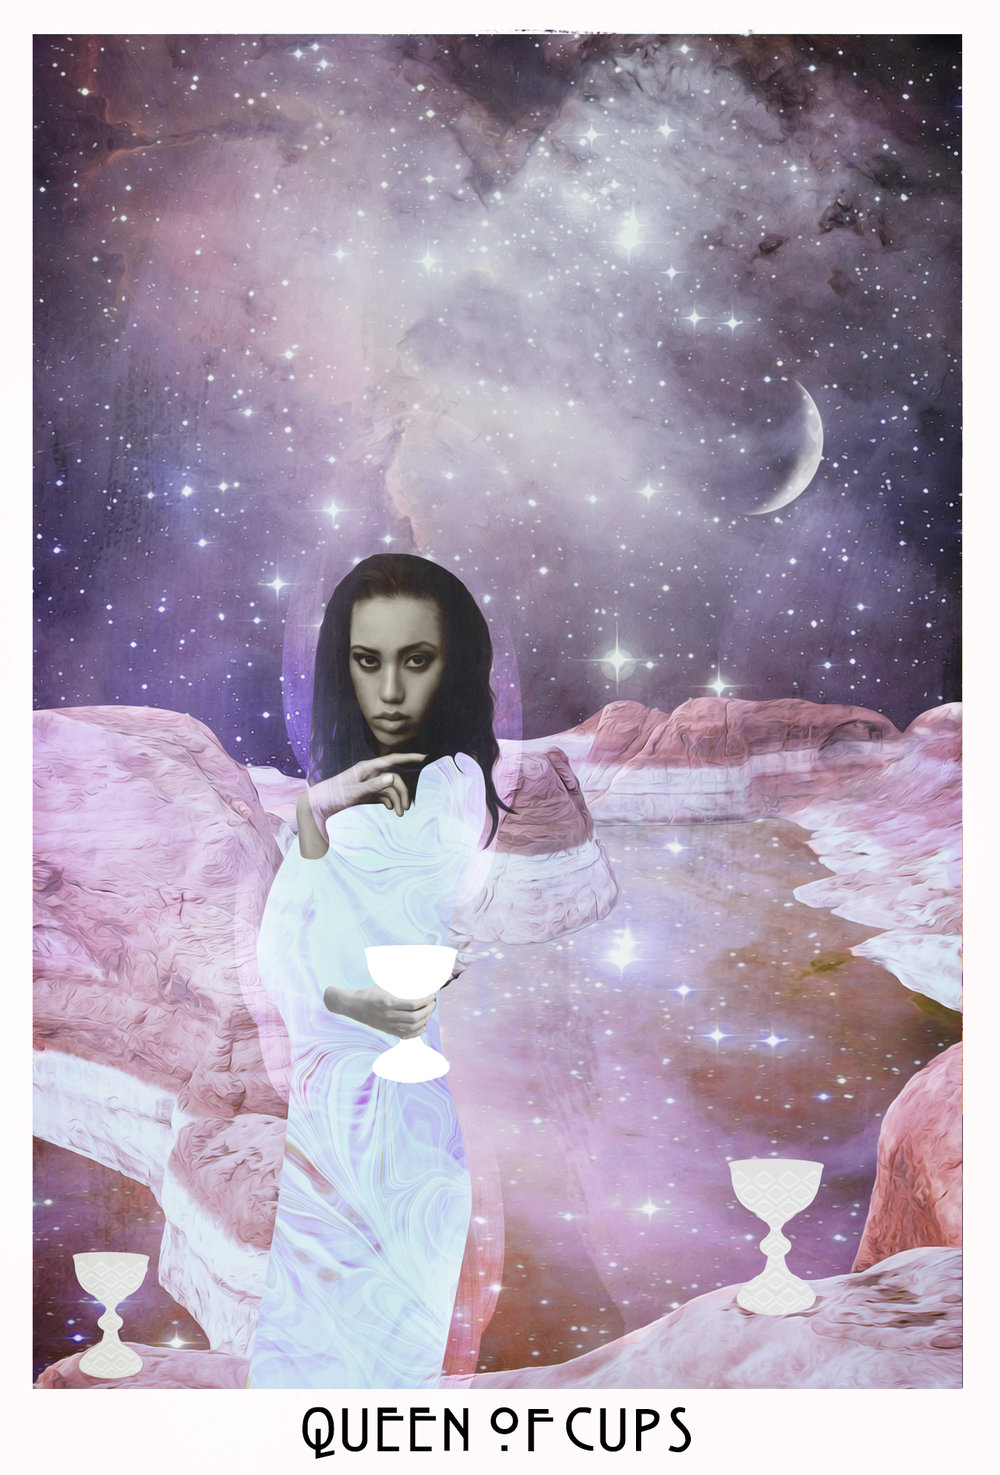 HUMAN DESIGN X TAROT - The Queen of Cups really embodies the energy of Gate 13. Compassionate and nurturing, people are attracted to her healing aura and know that they can confide in her to be honest and to keep their secrets.Image via Starchild Tarot